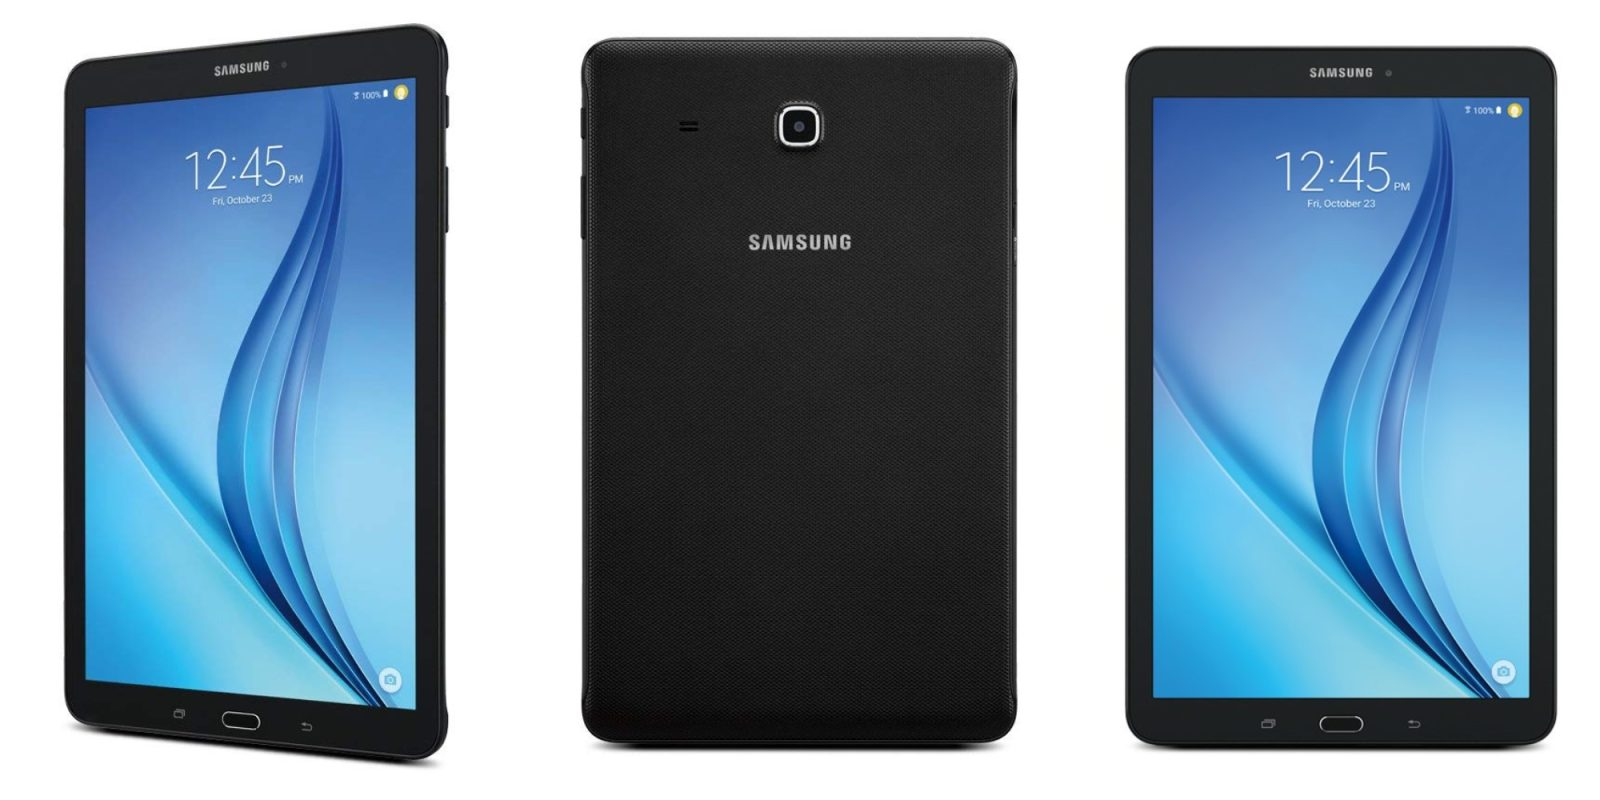 Samsung's affordable Galaxy Tab E drops to the 2019 low at $130 ($70 off)